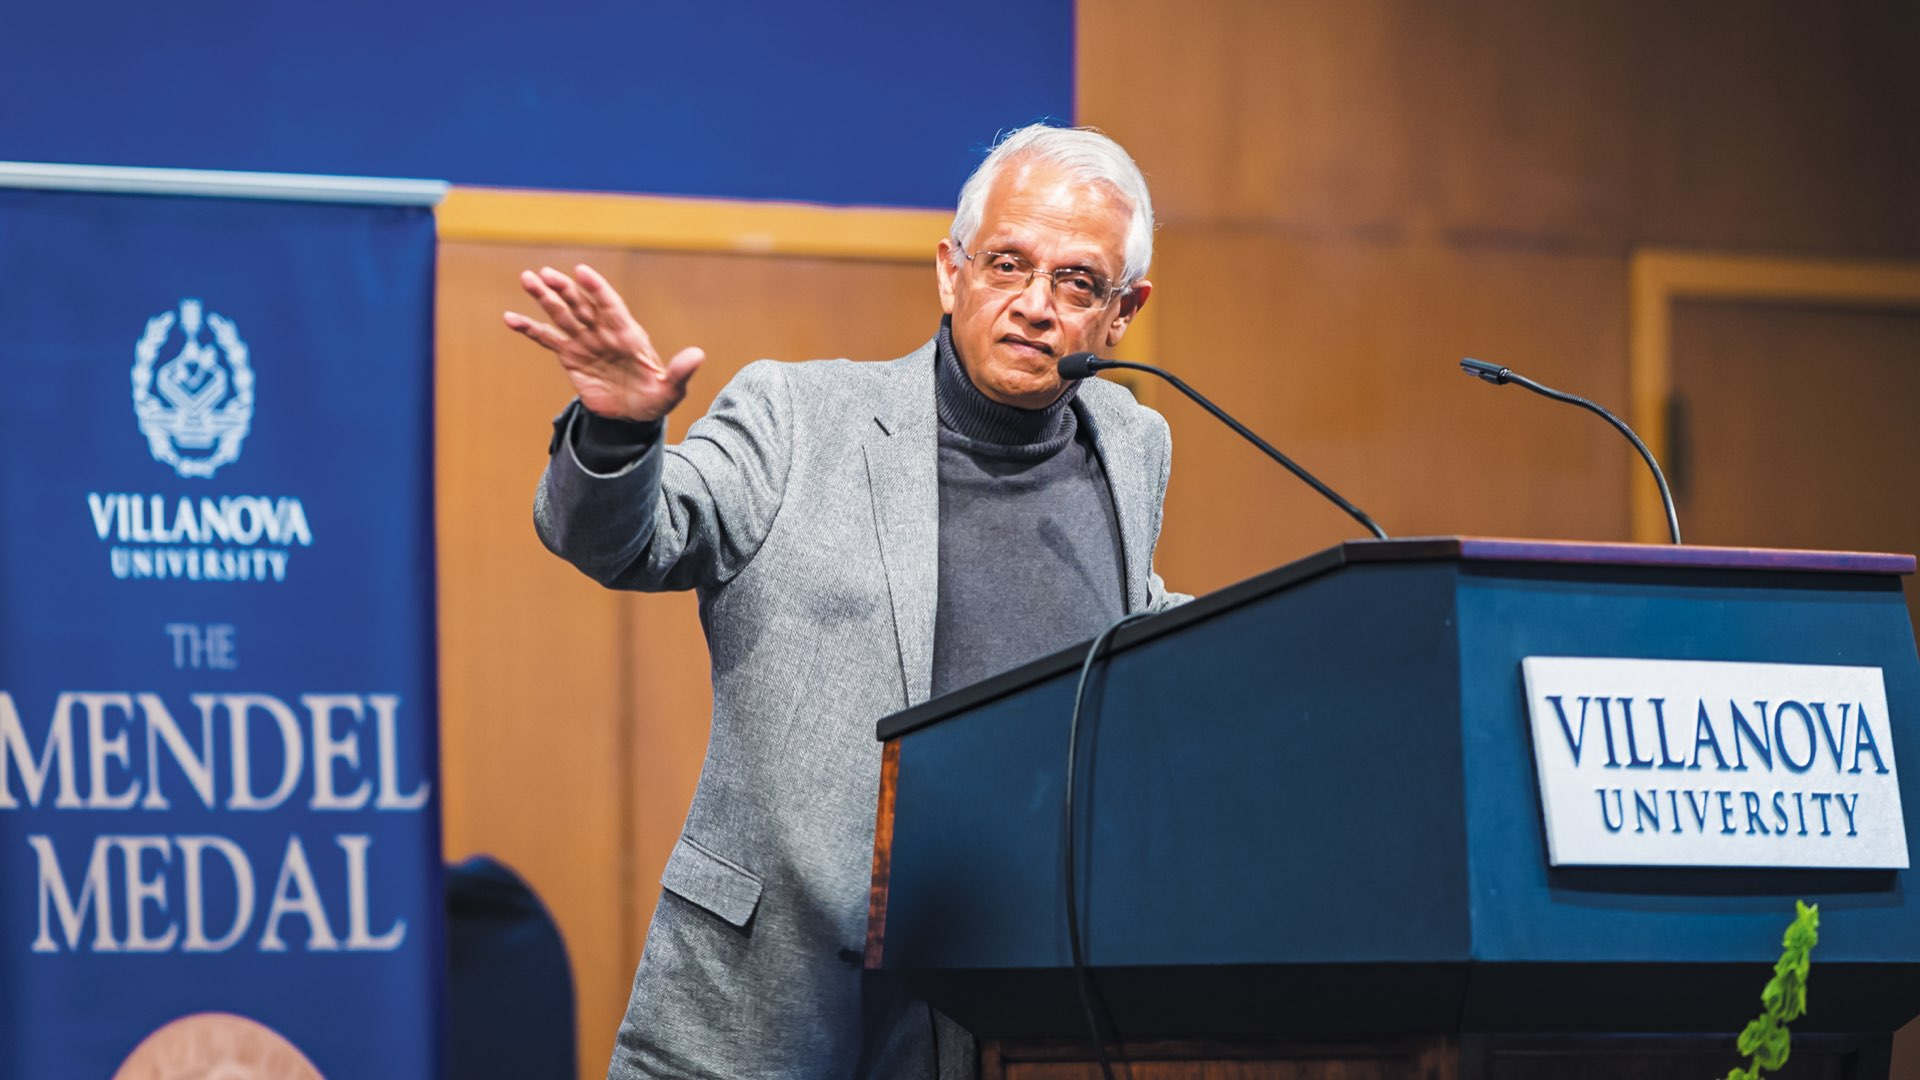 2018 Mendel Medal recipient Veerabhadran Ramanathan, PhD, speaking at a podium at Villanova